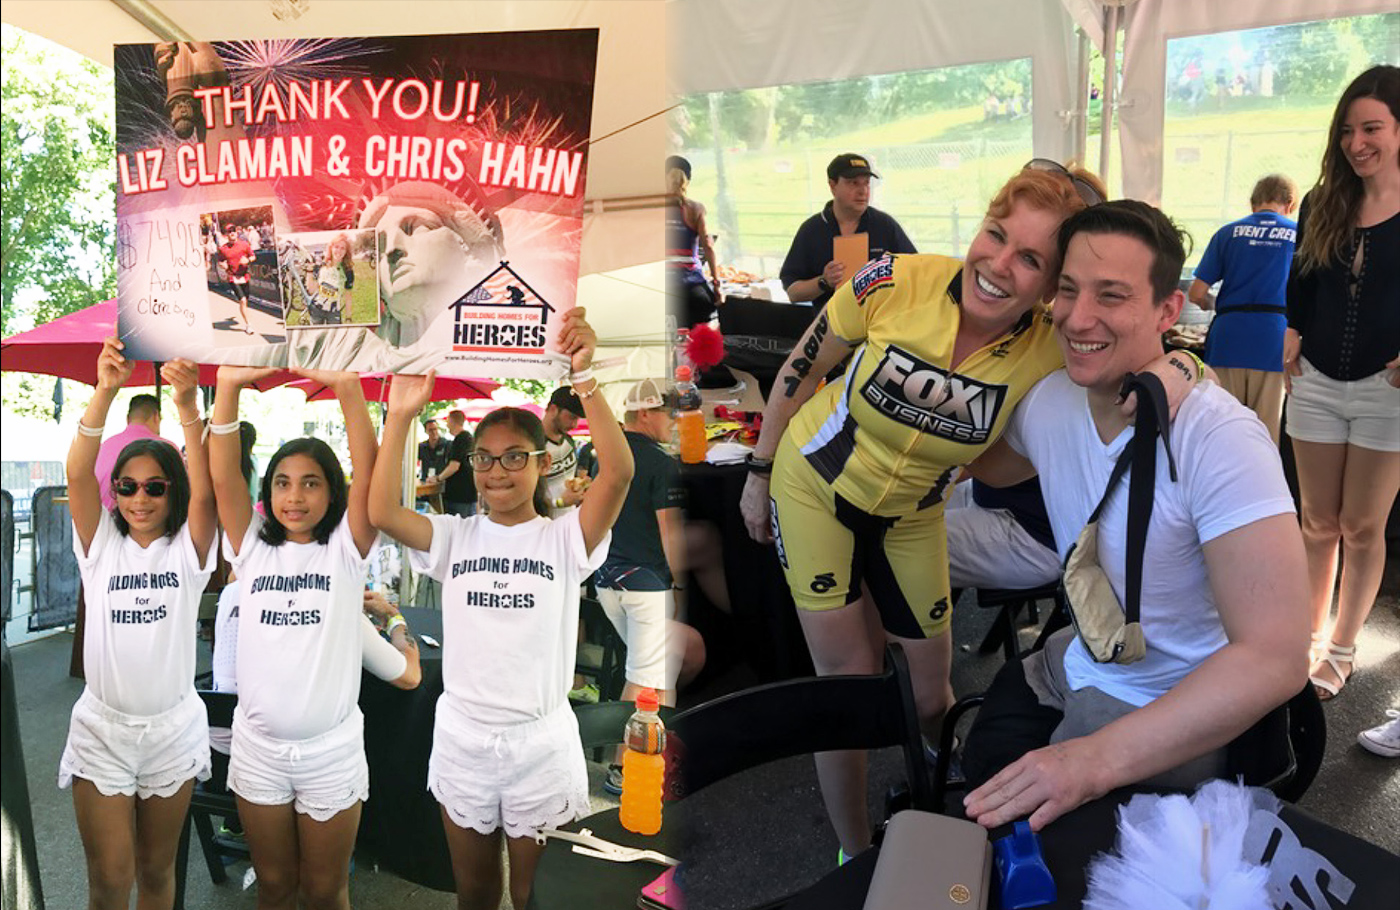 2019 NYC Triathlon - Help Support Liz Claman and Chris Hahn Raise funds for our Heroes